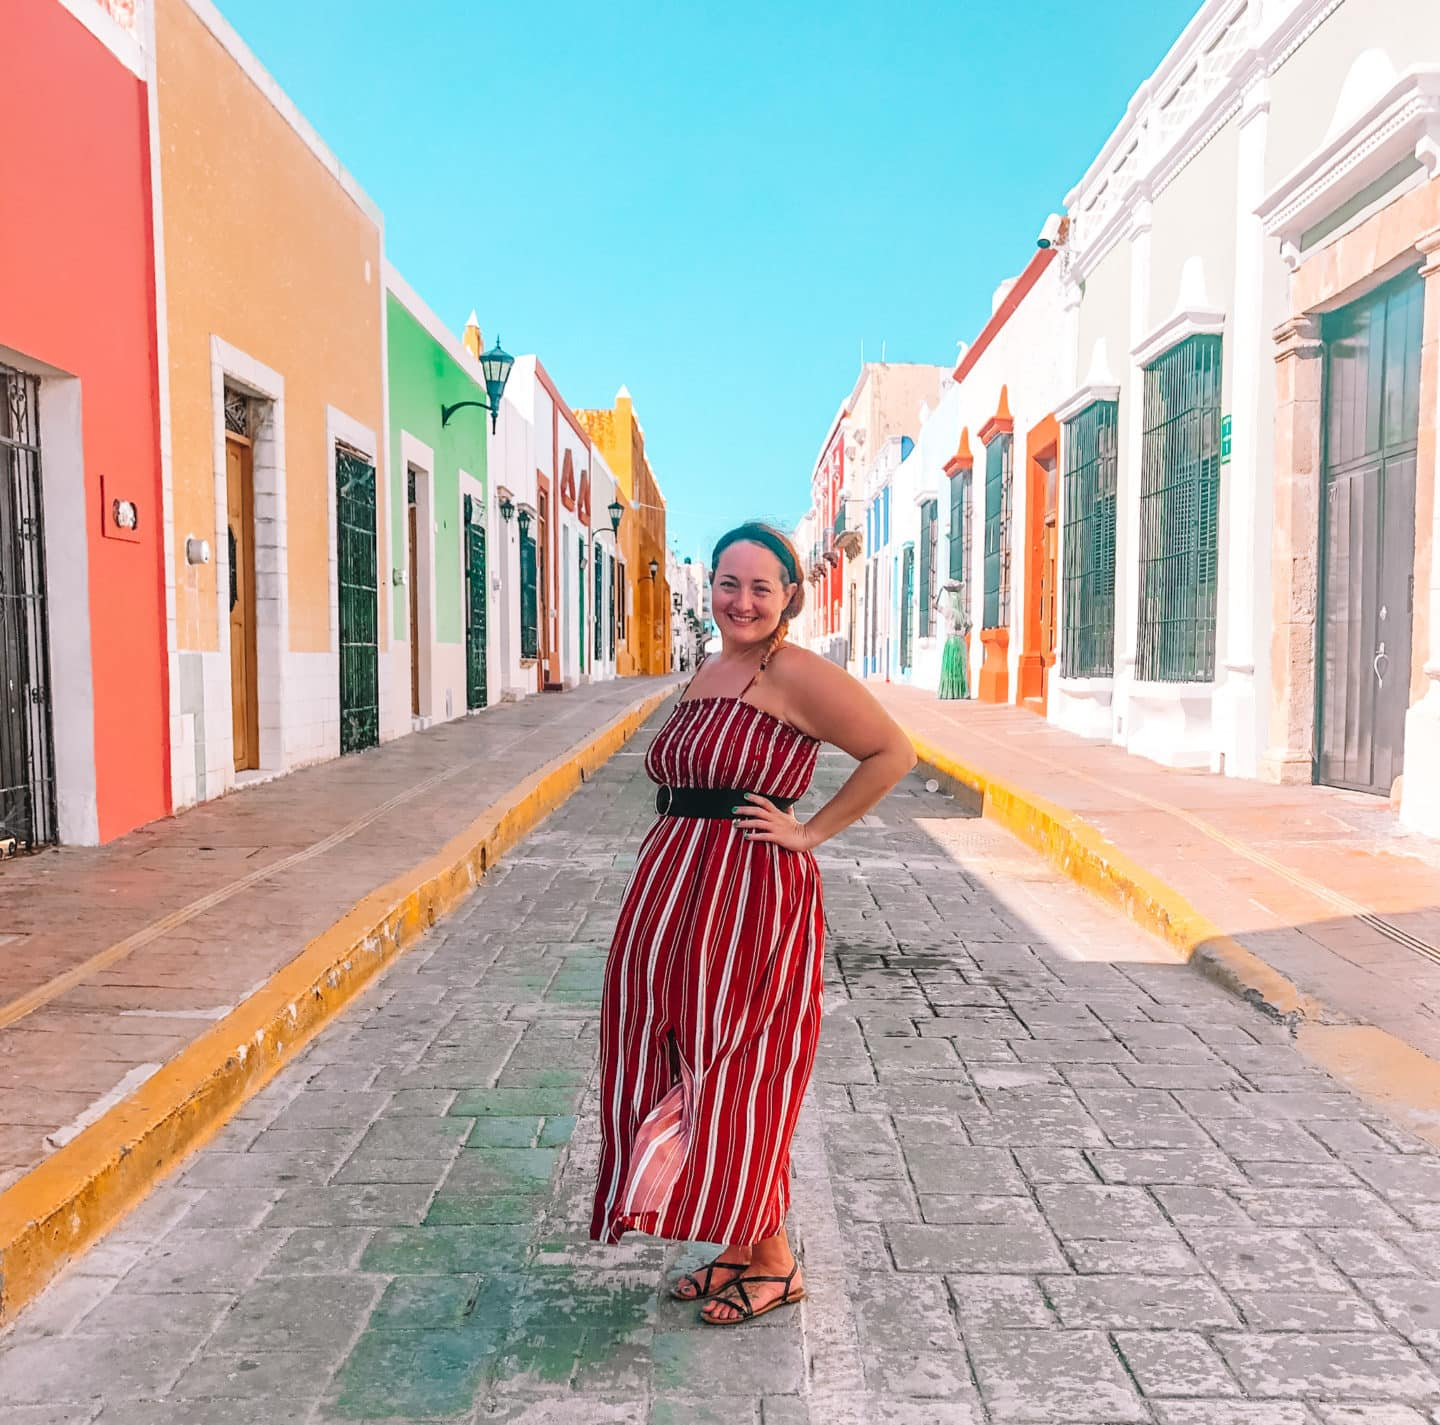 Streets of Campeche Mexico